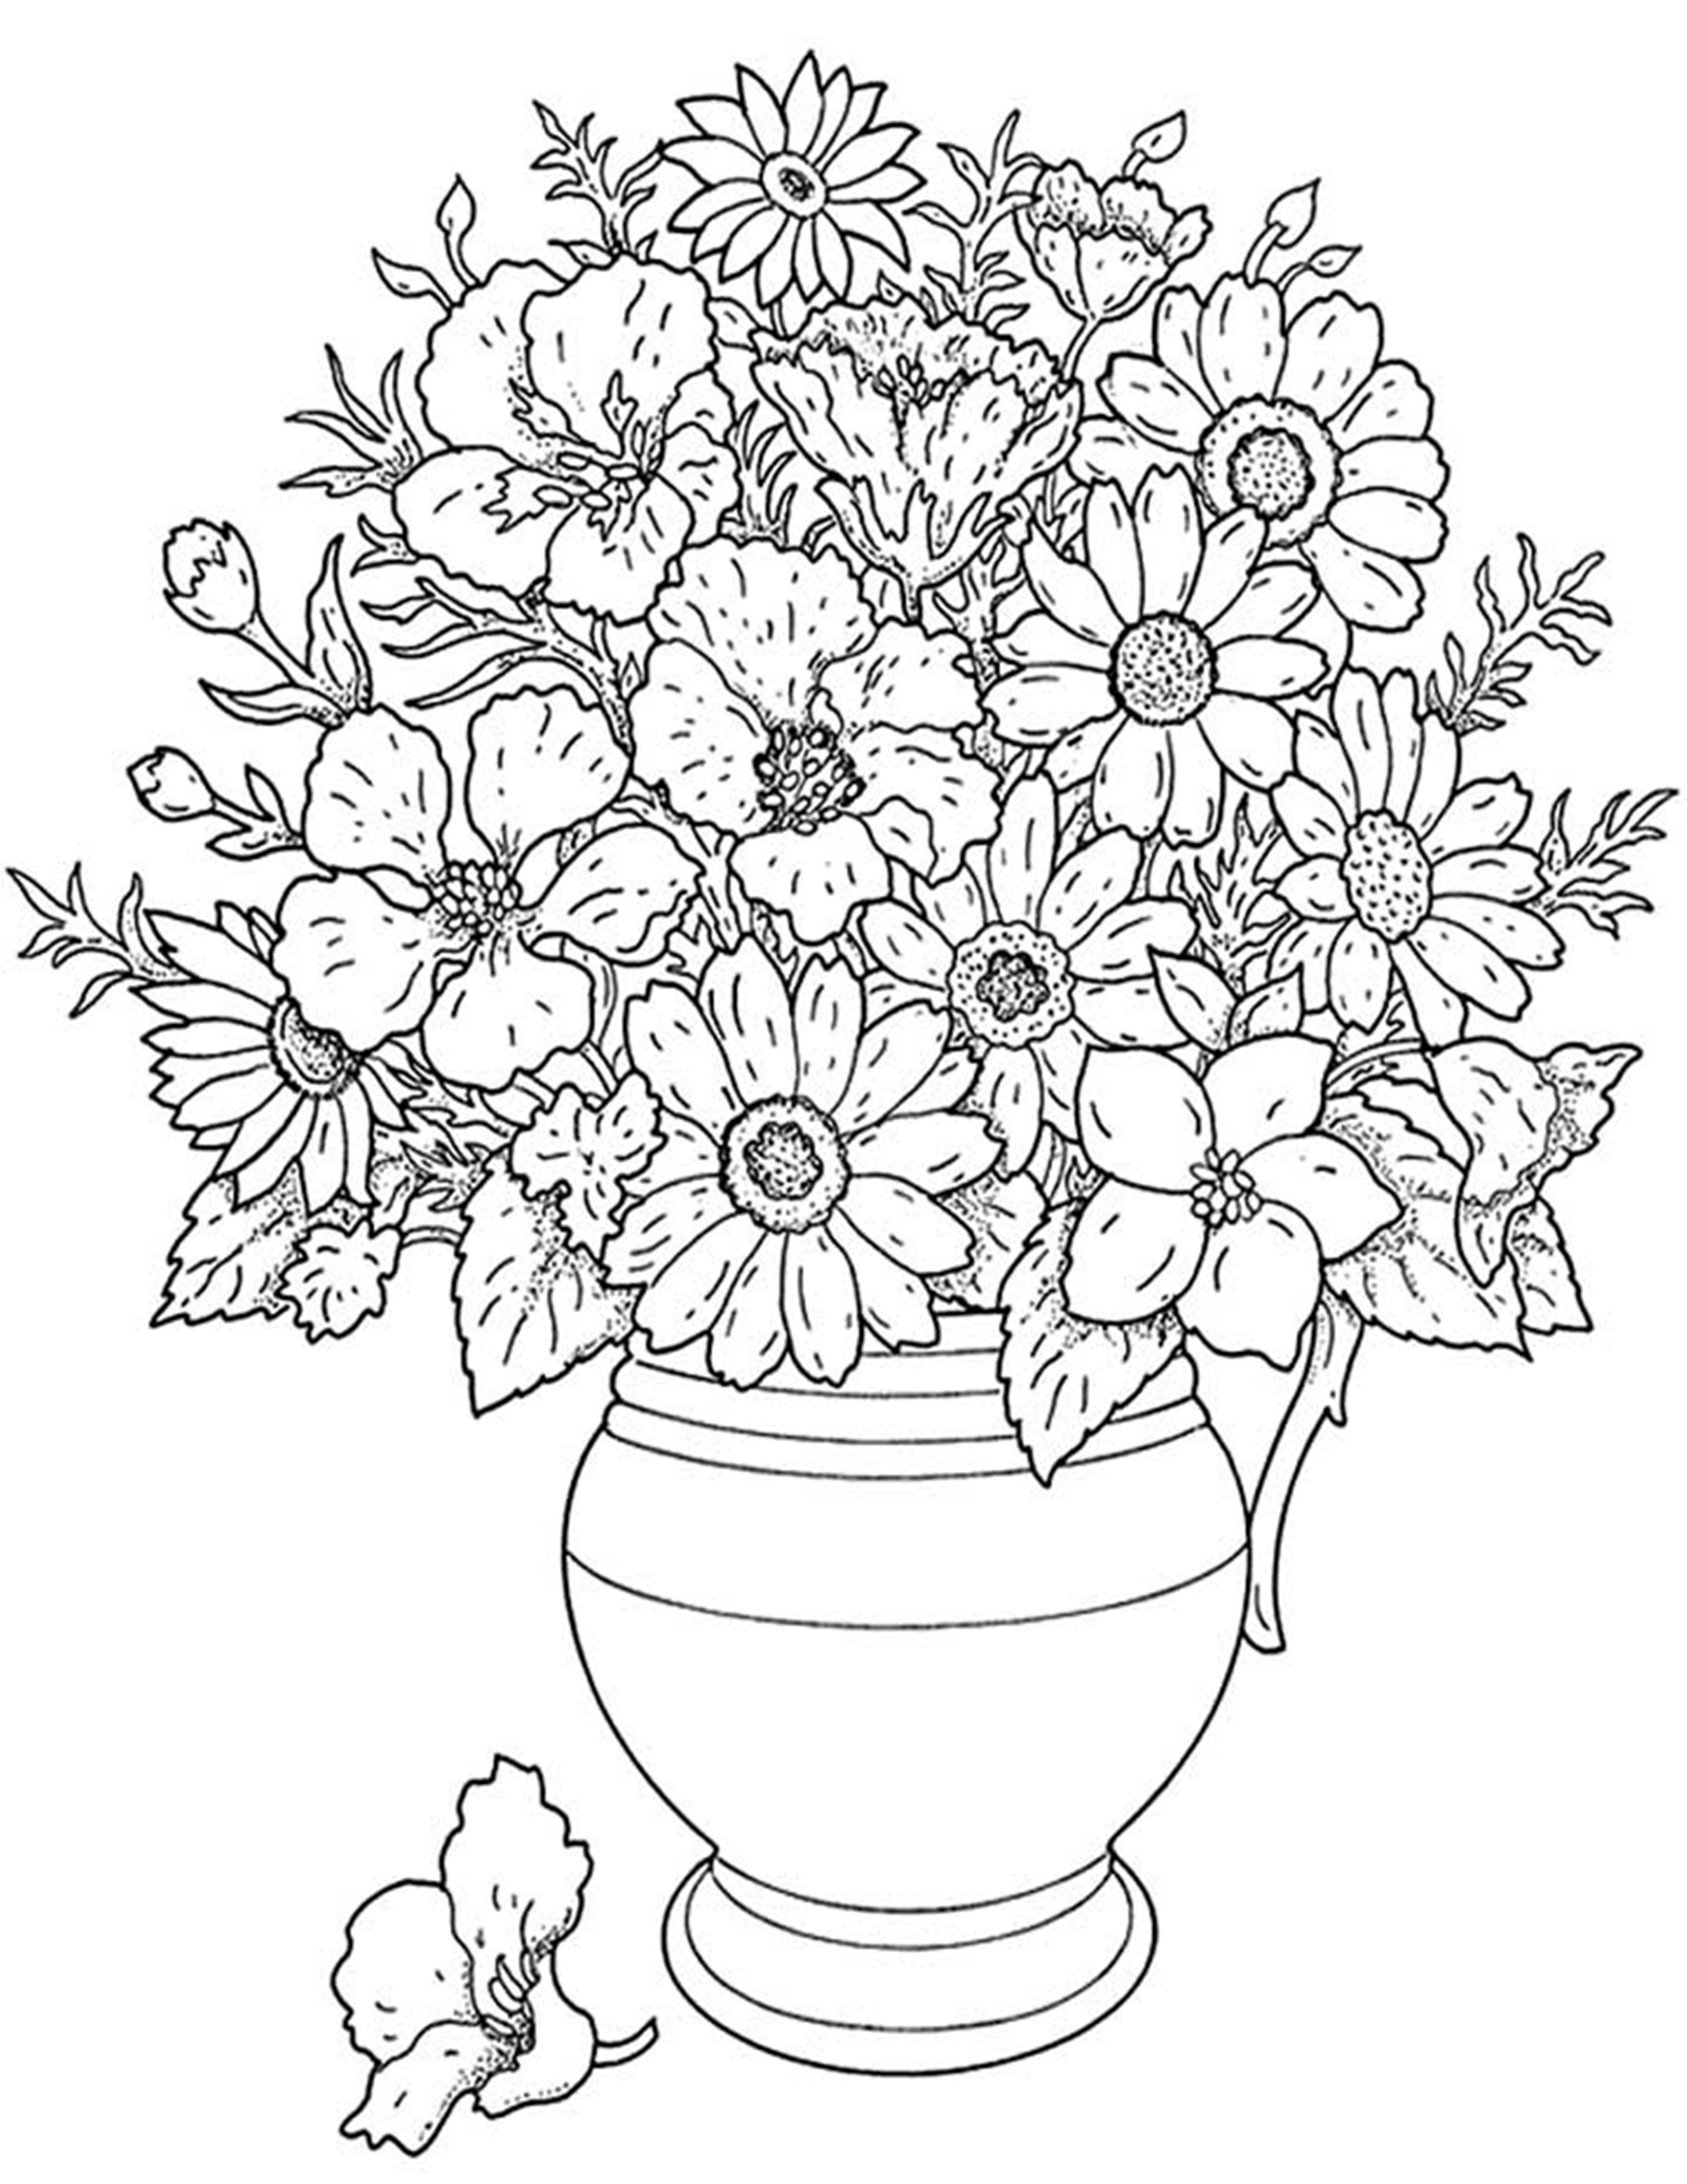 coloring pages of flowers coloring town flowers pages of coloring